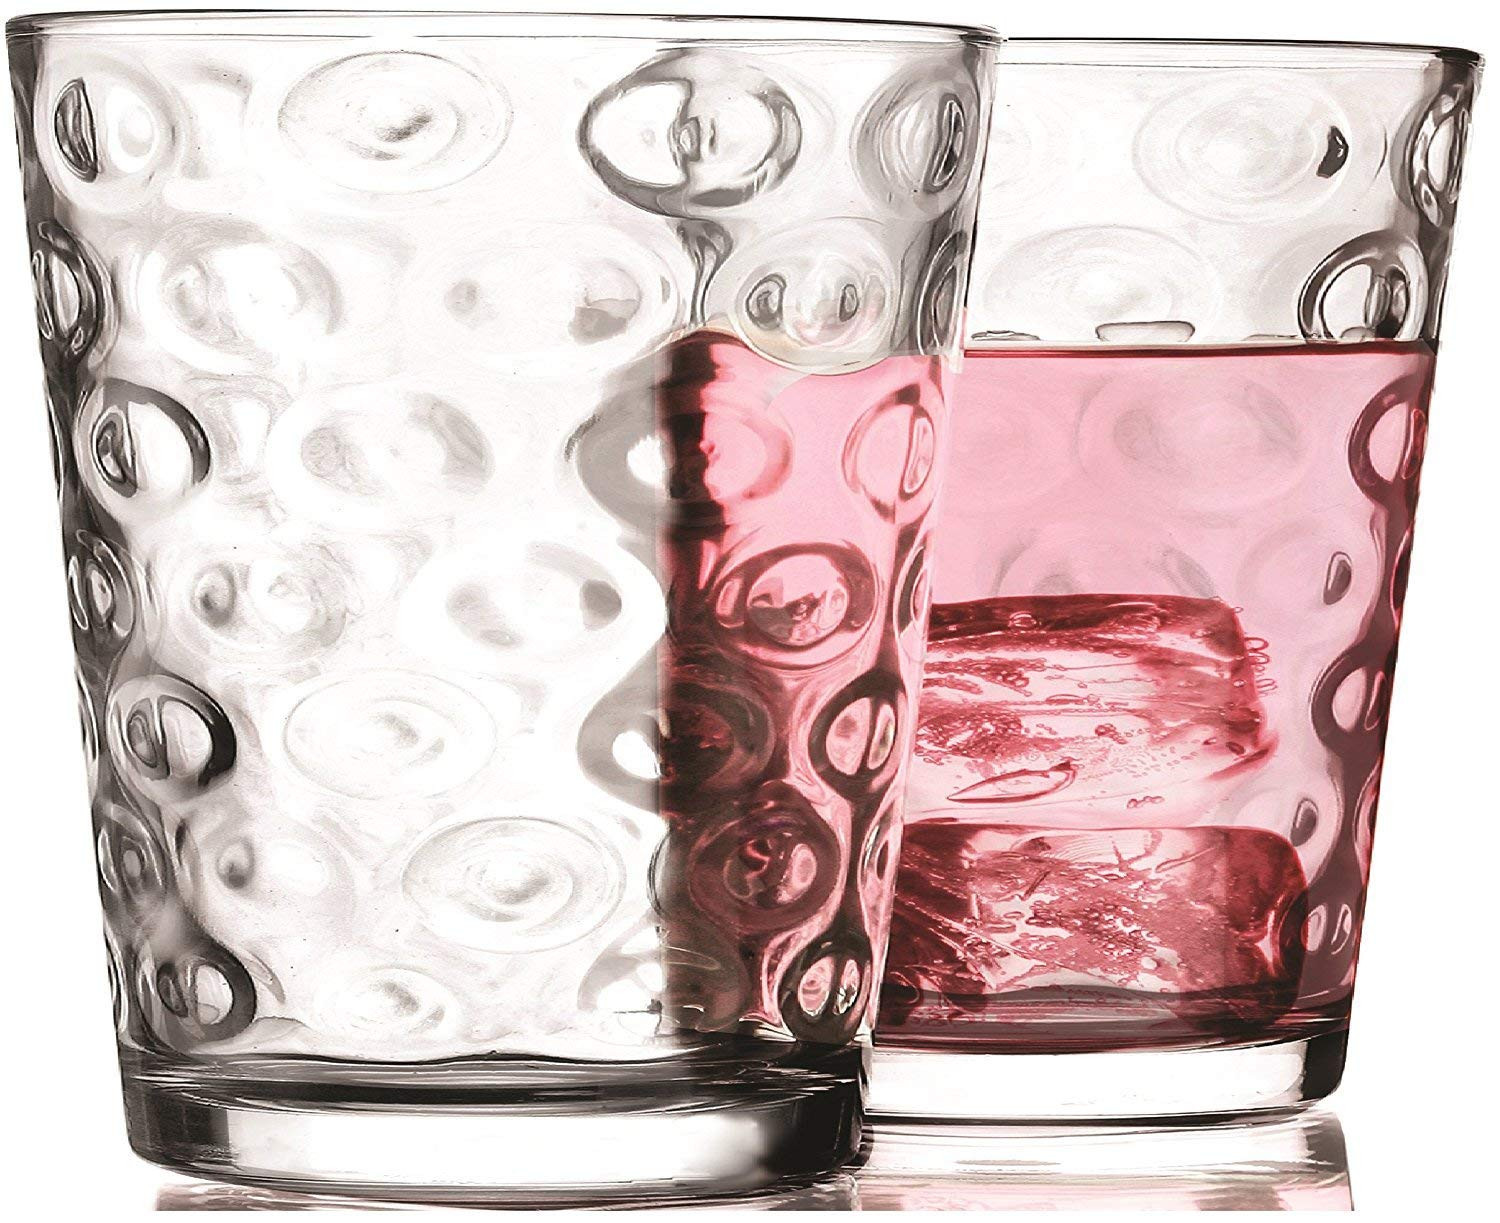 footed clear glass vase of amazon com circleware 44516 circles drinking glassware products throughout amazon com circleware 44516 circles drinking glassware products clear mixed drinkware sets